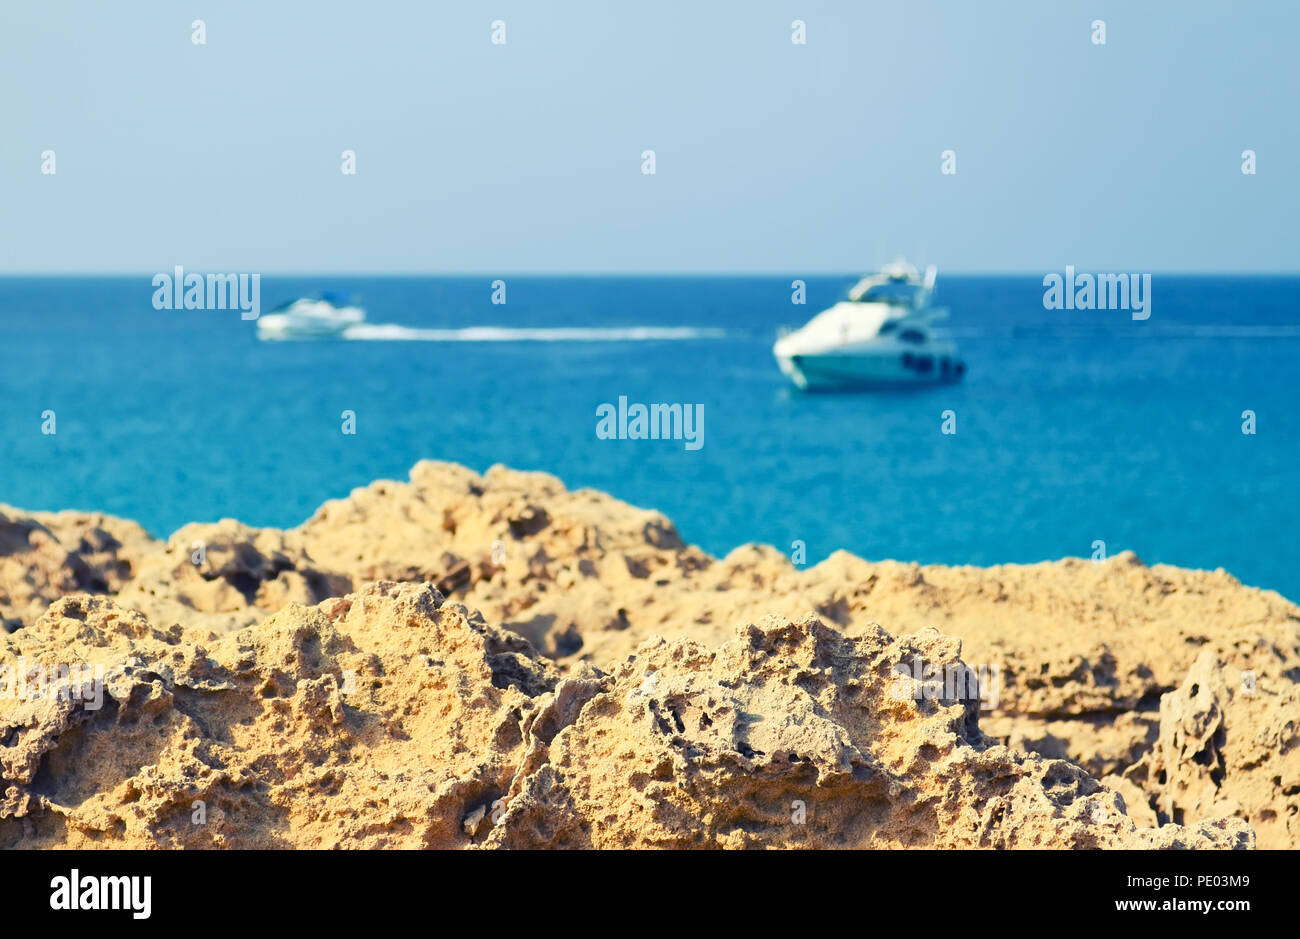 Volcanic rock on a blurred background of the blue sea and boats - Stock Image